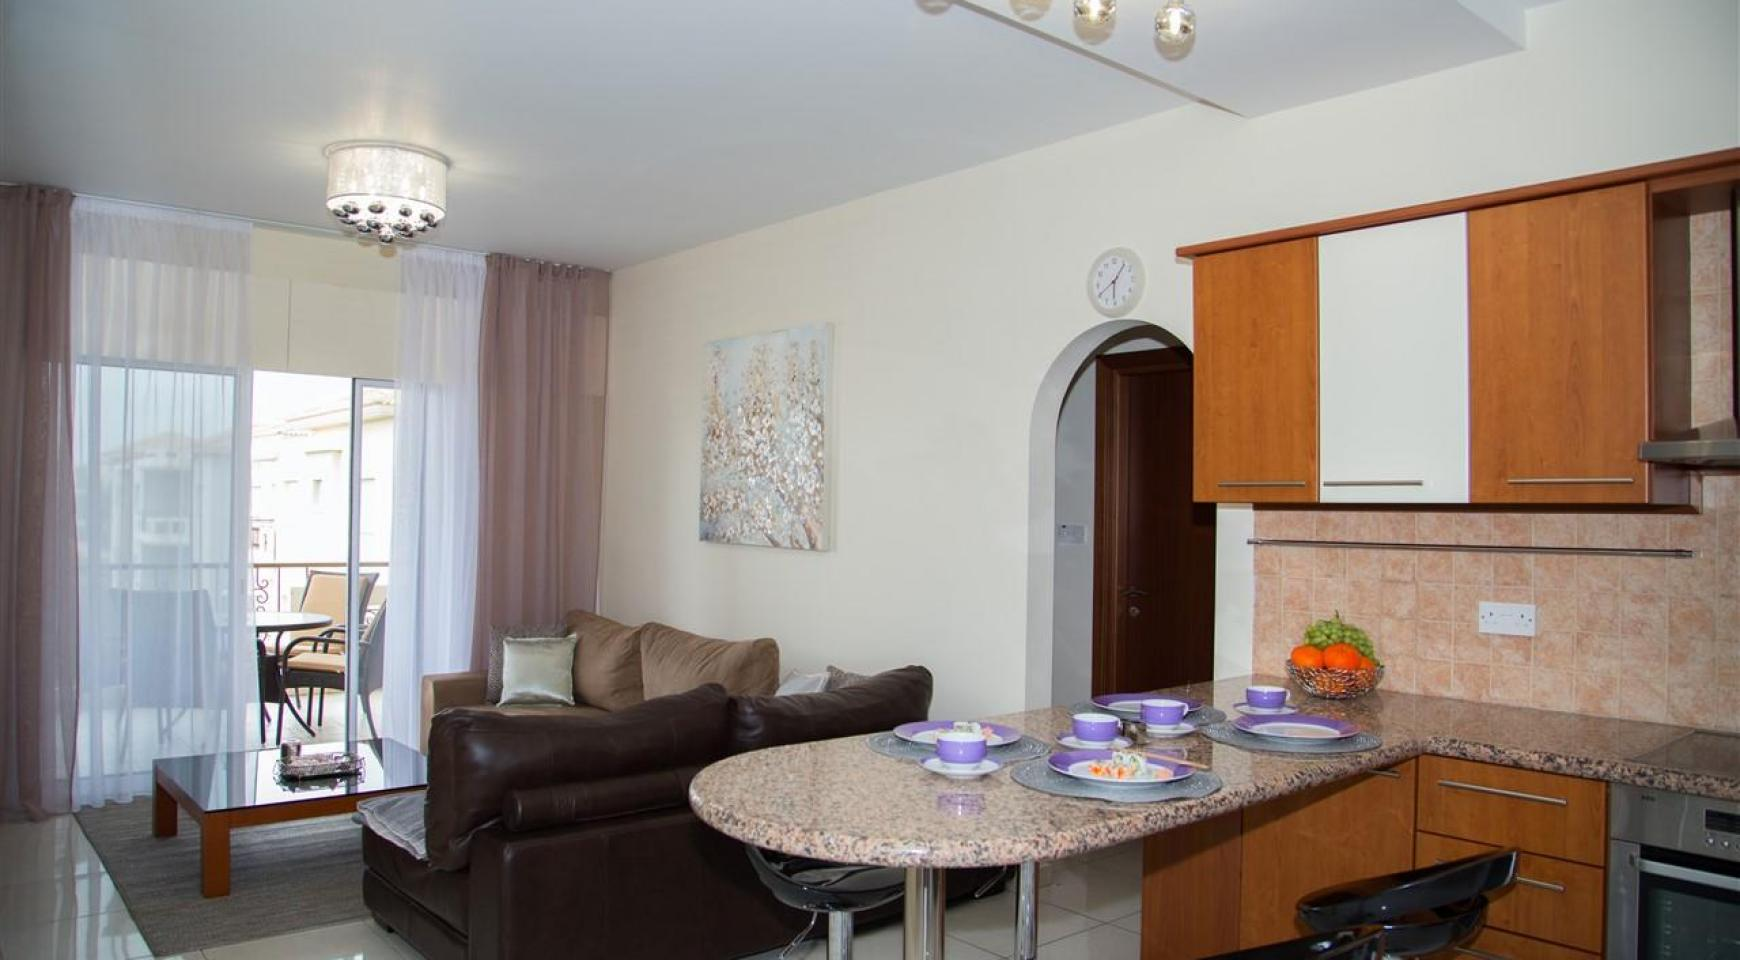 2 Bedroom Apartment Mesogios Iris 304 in the Complex near the Sea - 1